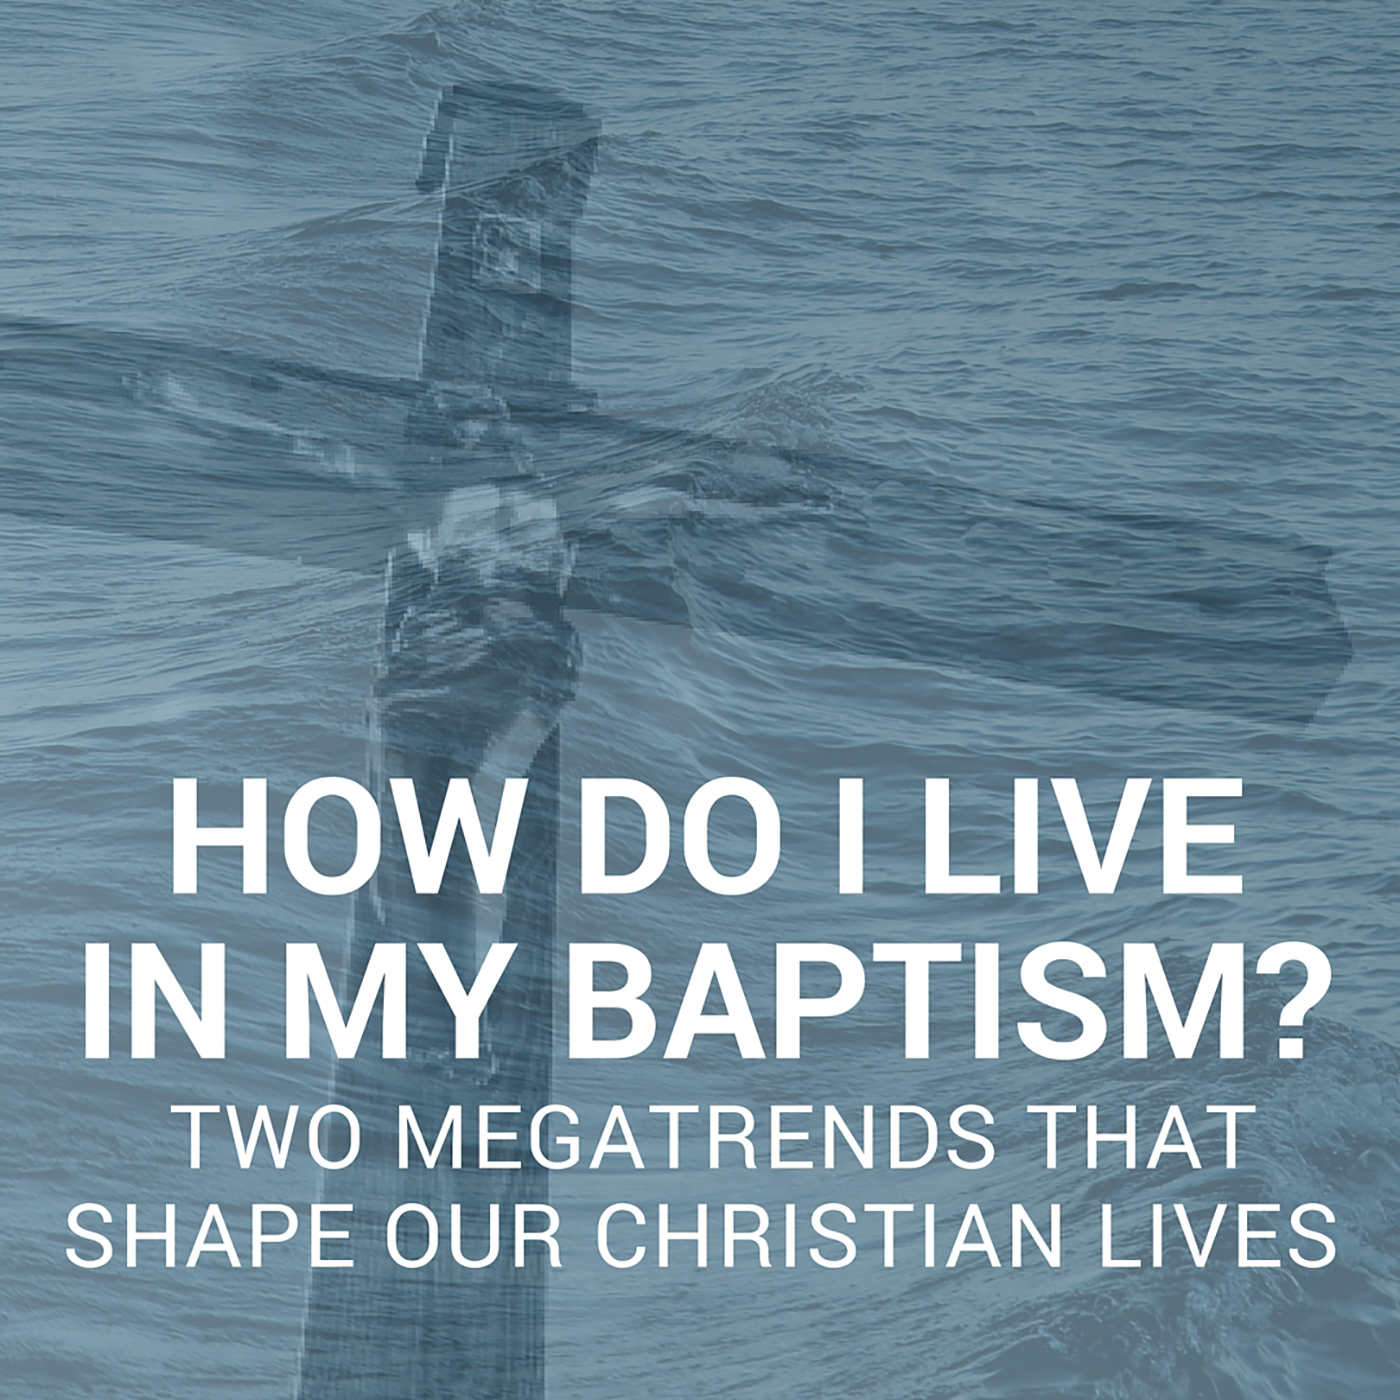 How do I live in my Baptism? Two Megatrends that Shape our Christian Lives